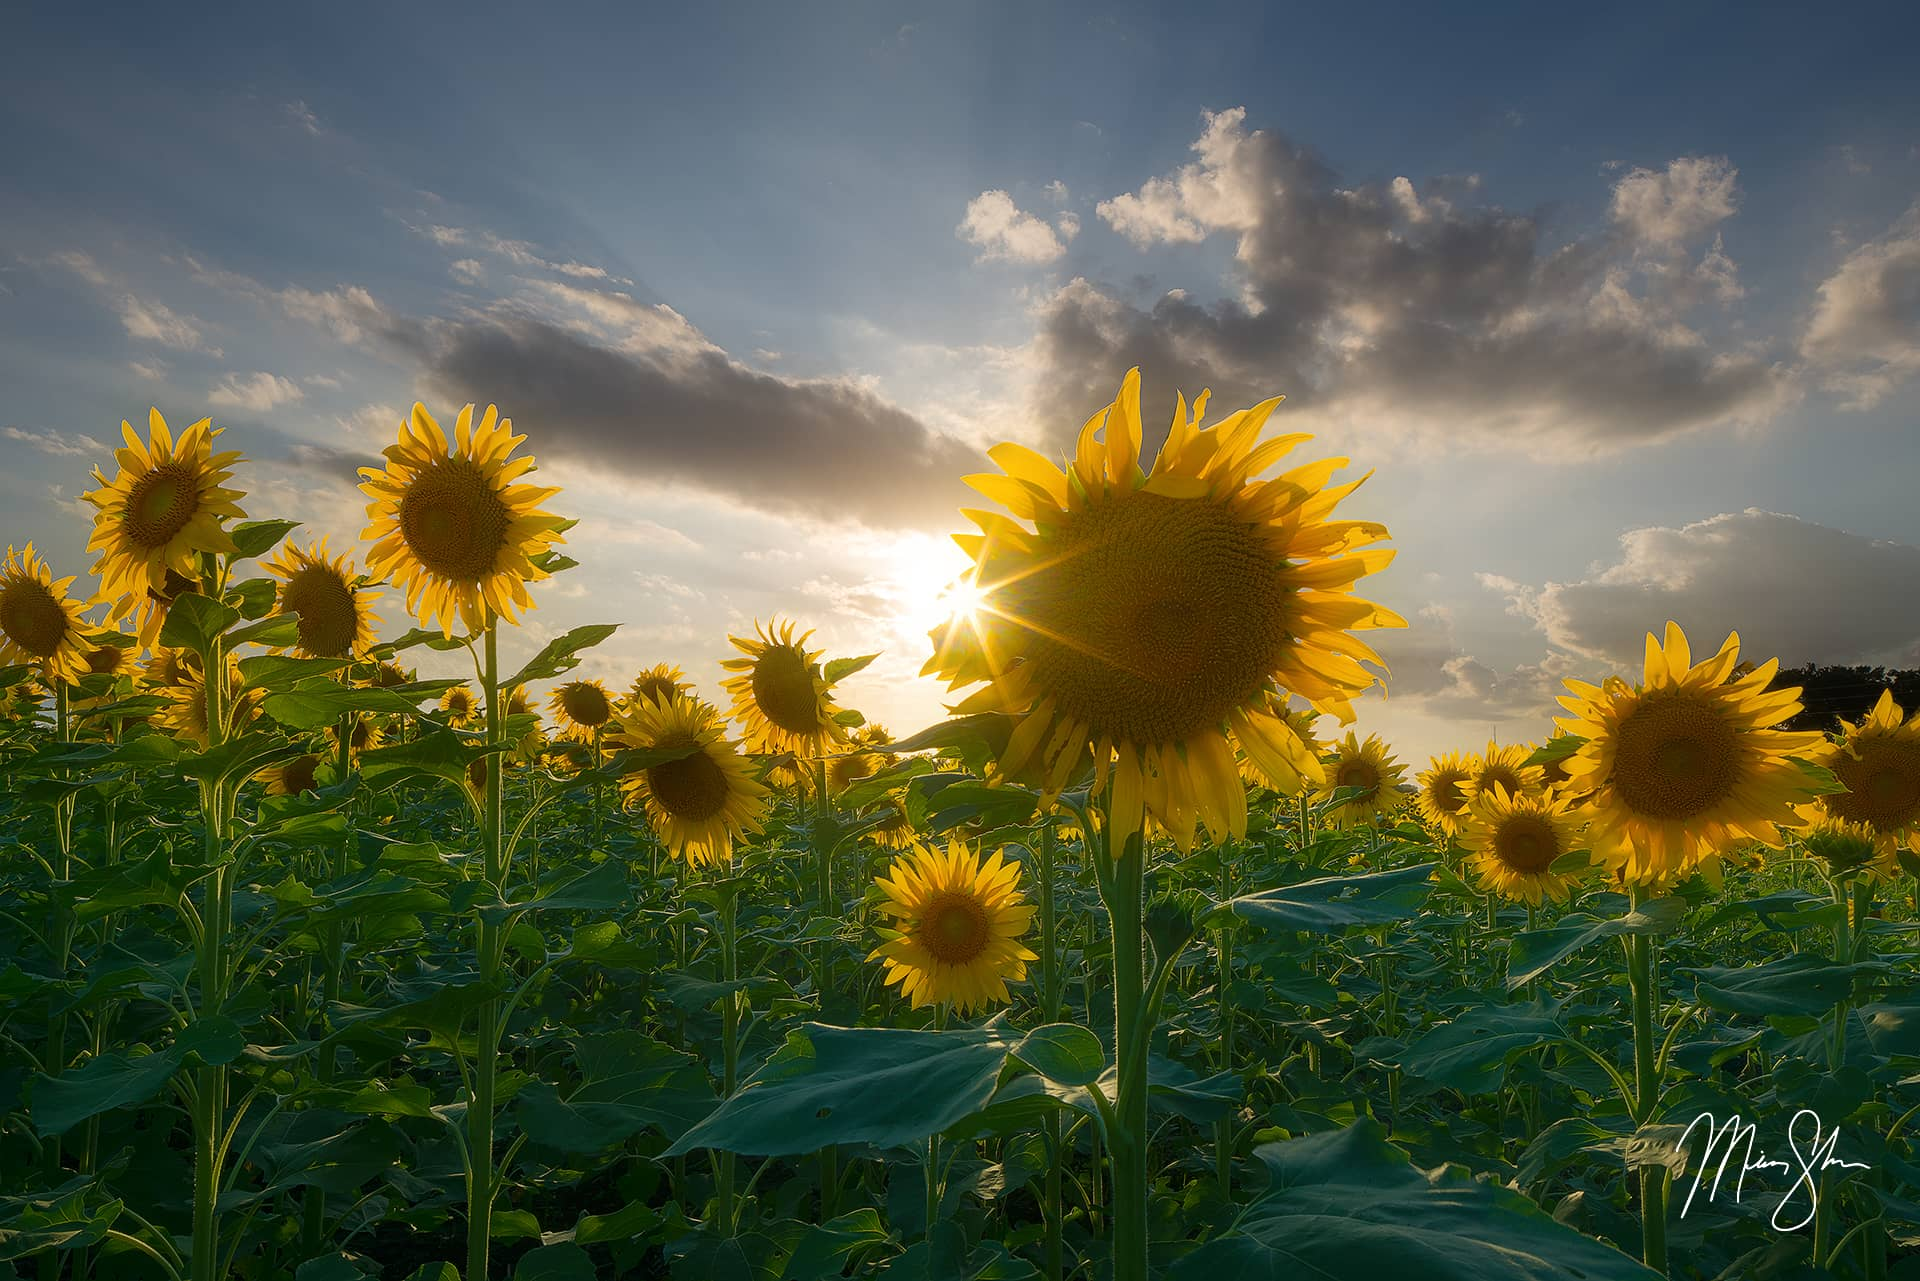 Sunburst Sunflowers